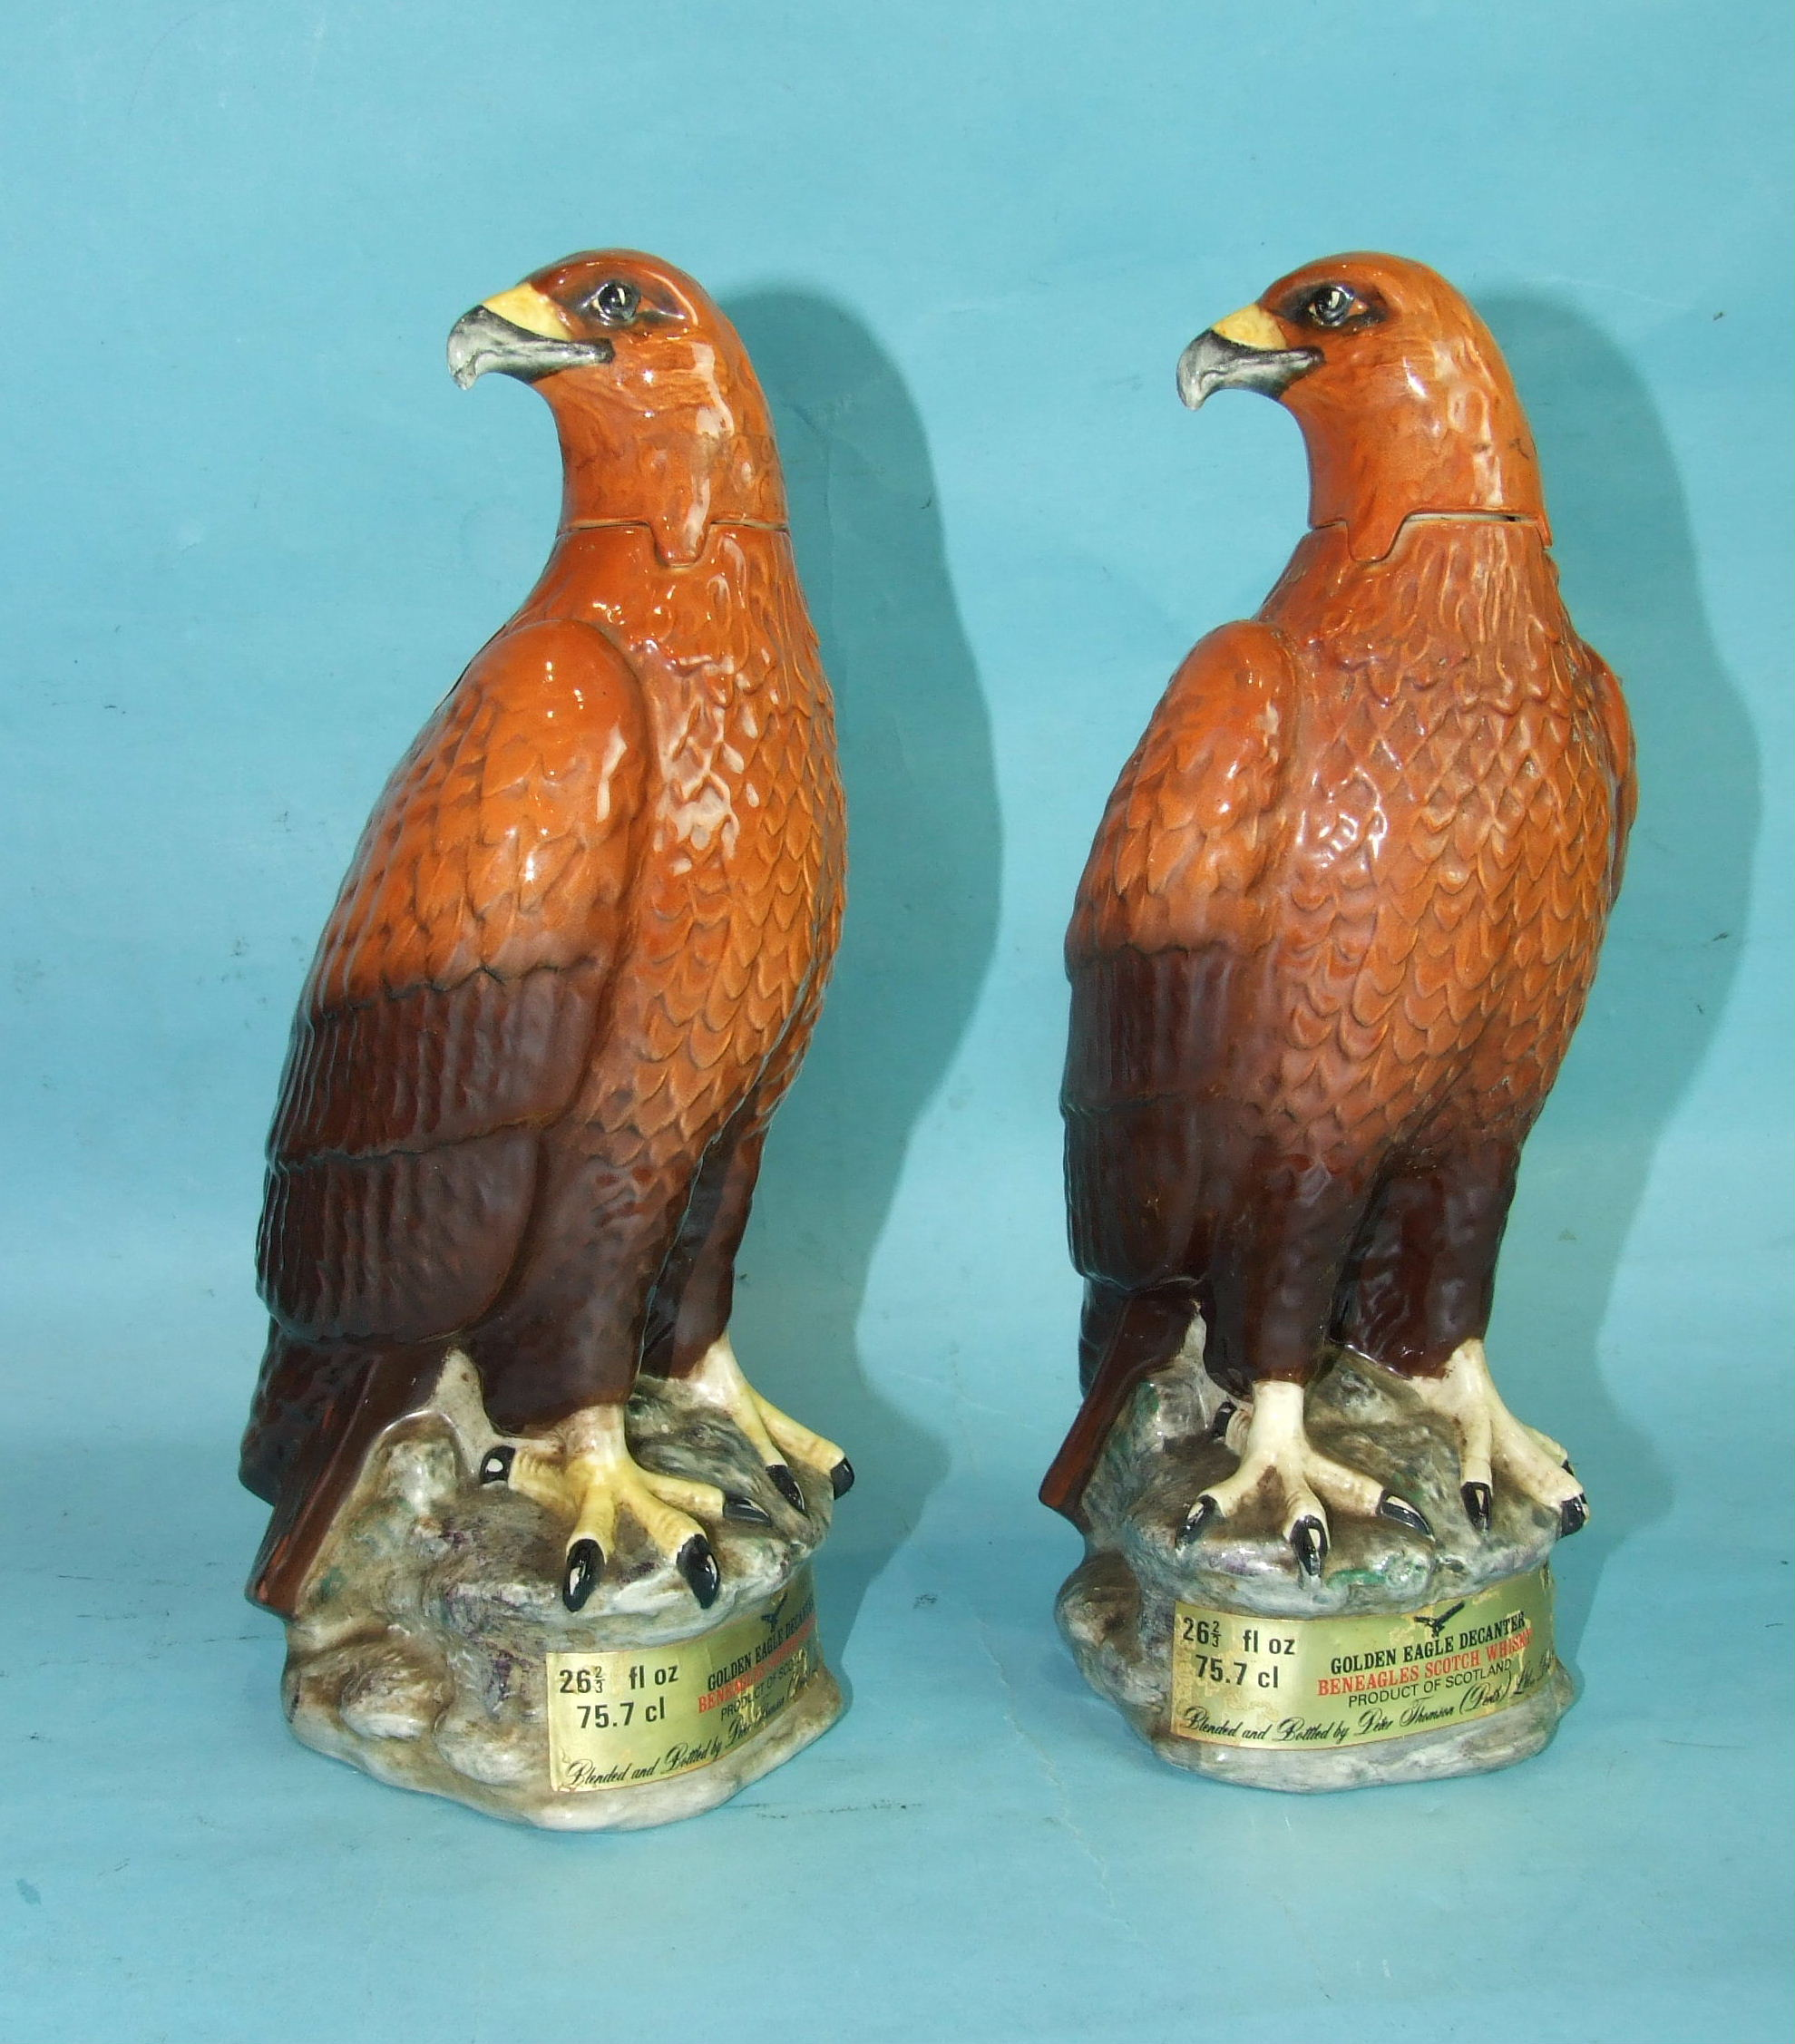 Lot 52 - Two Beswick Beneagles Scotch Whisky decanters in the form of Golden Eagles, 70%, 26? fl. oz,